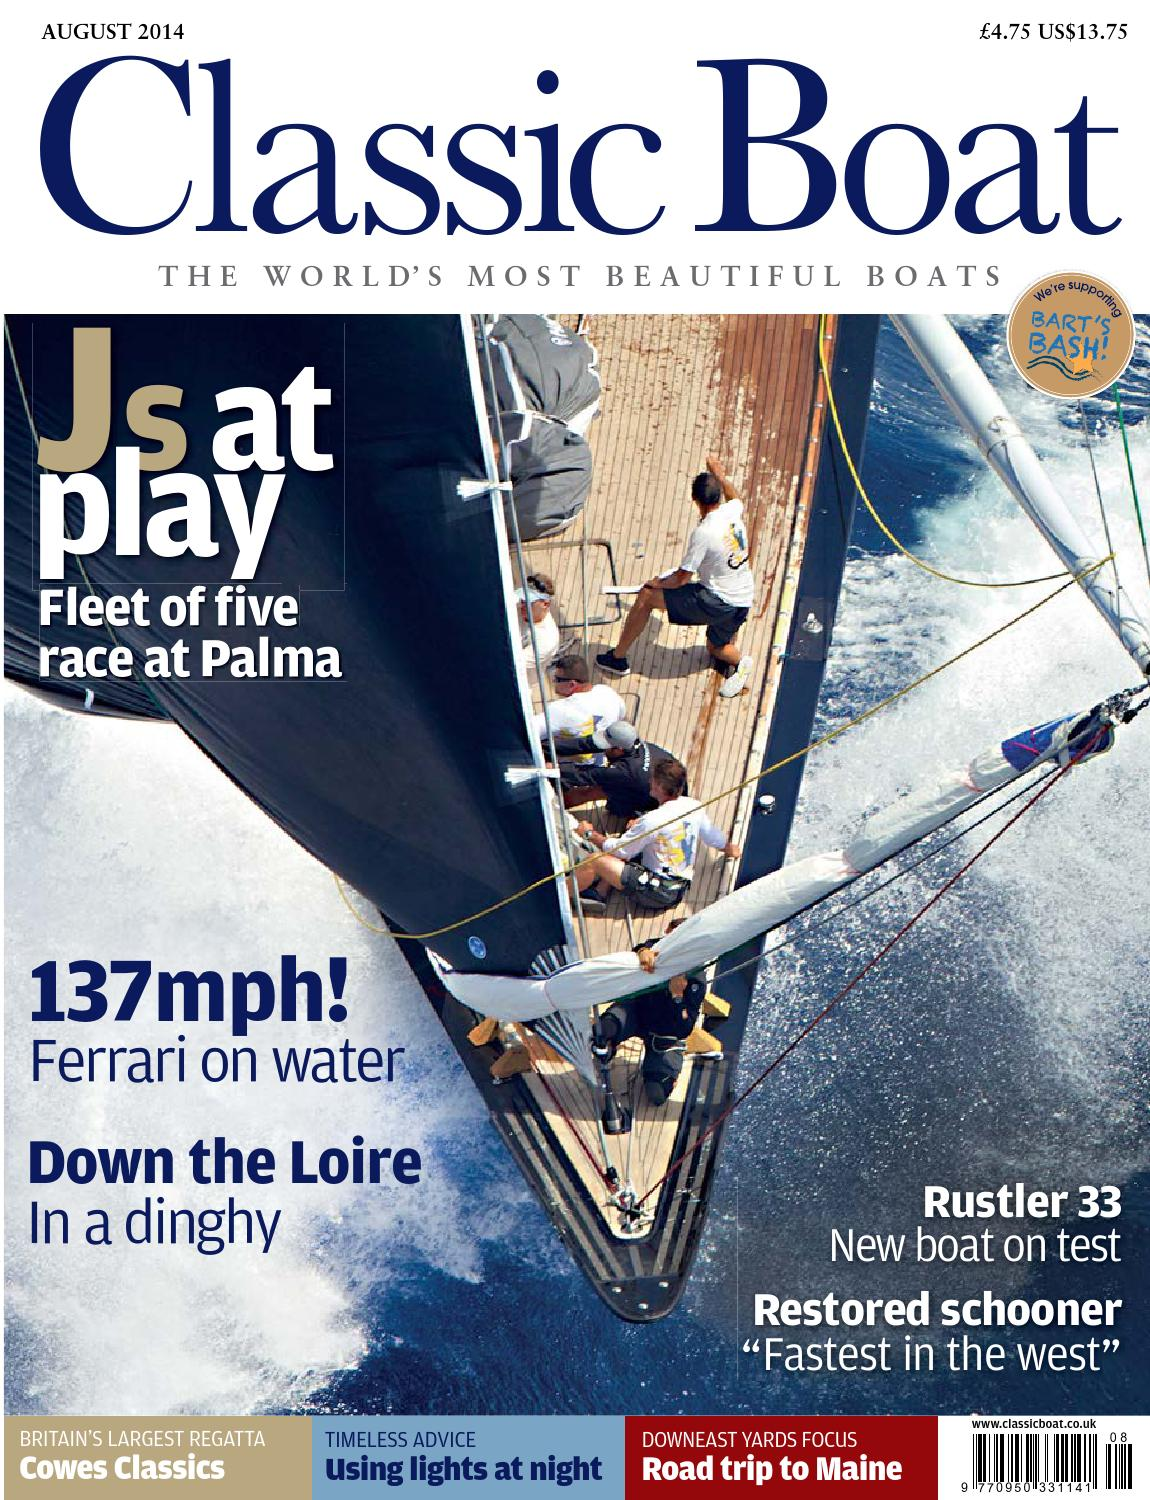 Classic Boat August 2014 by The Chelsea Magazine Company - issuu 52c2e99b9